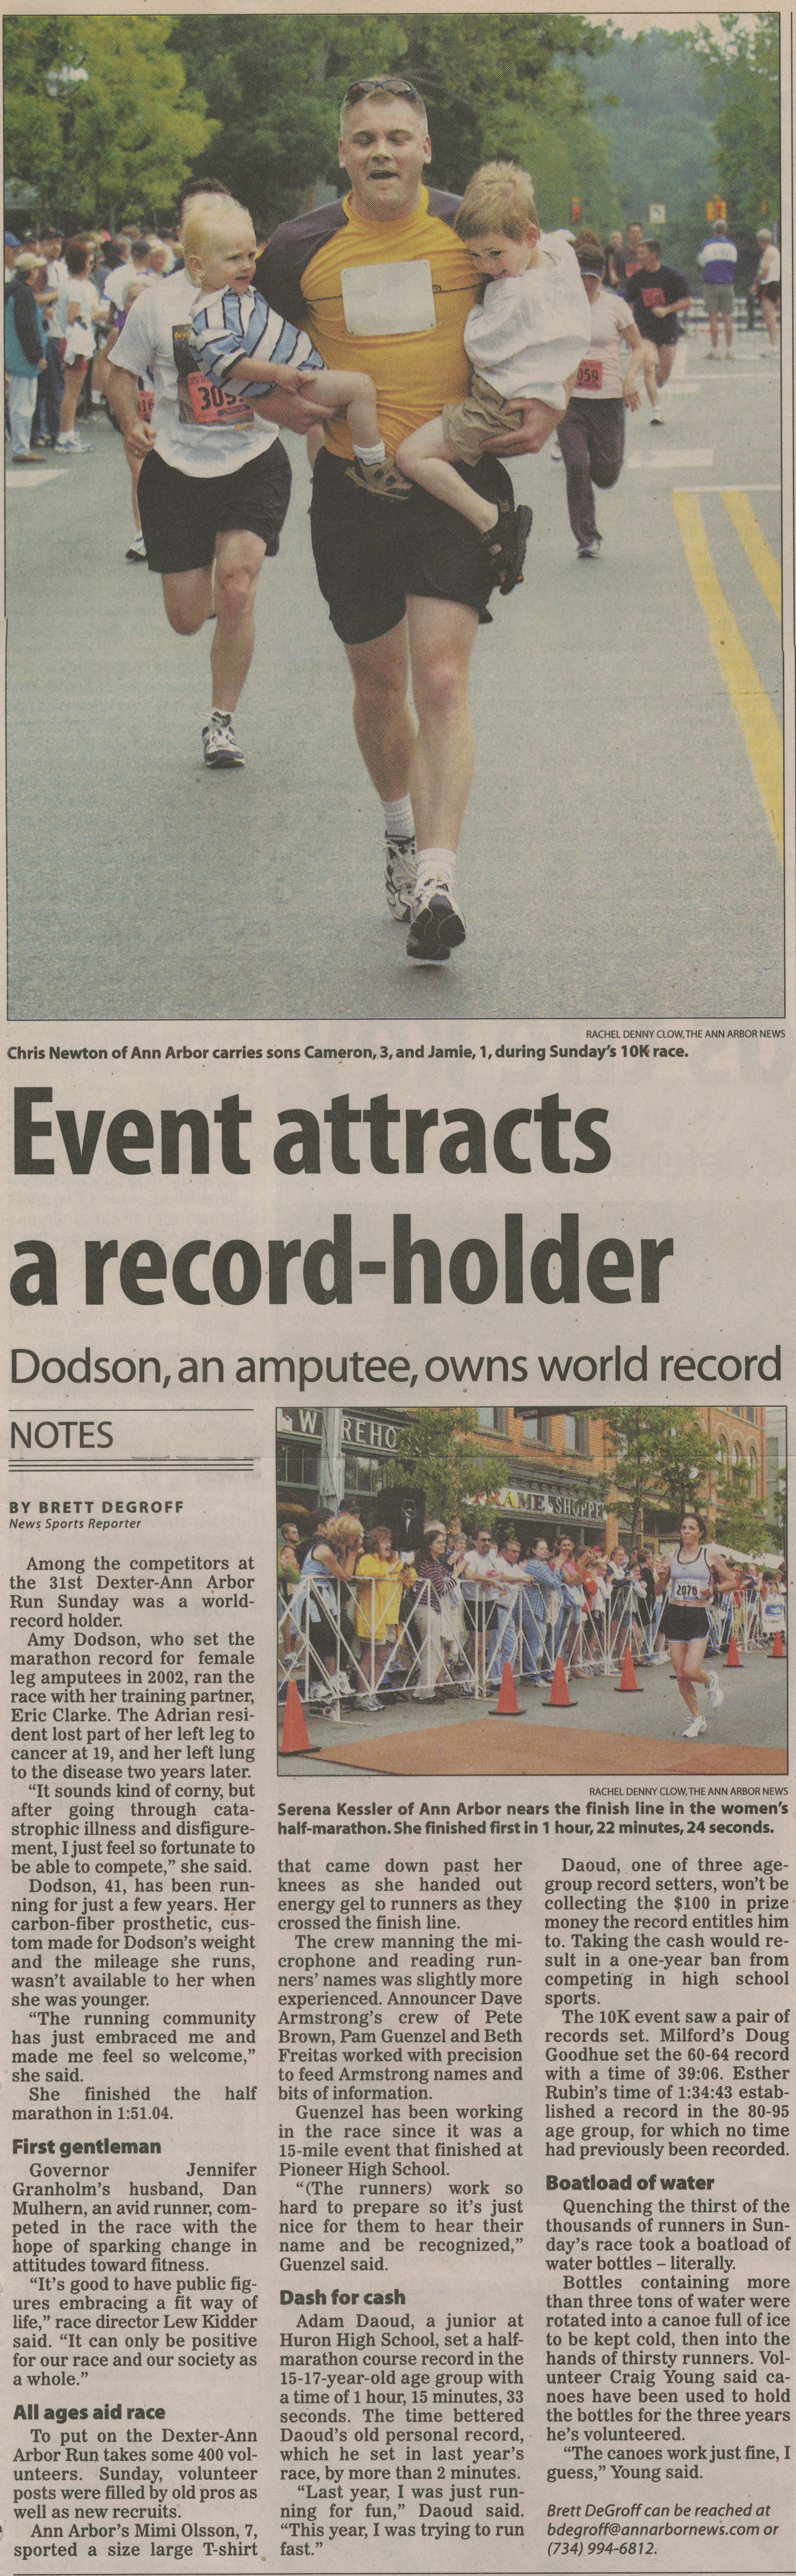 Event attracts a record-holder image